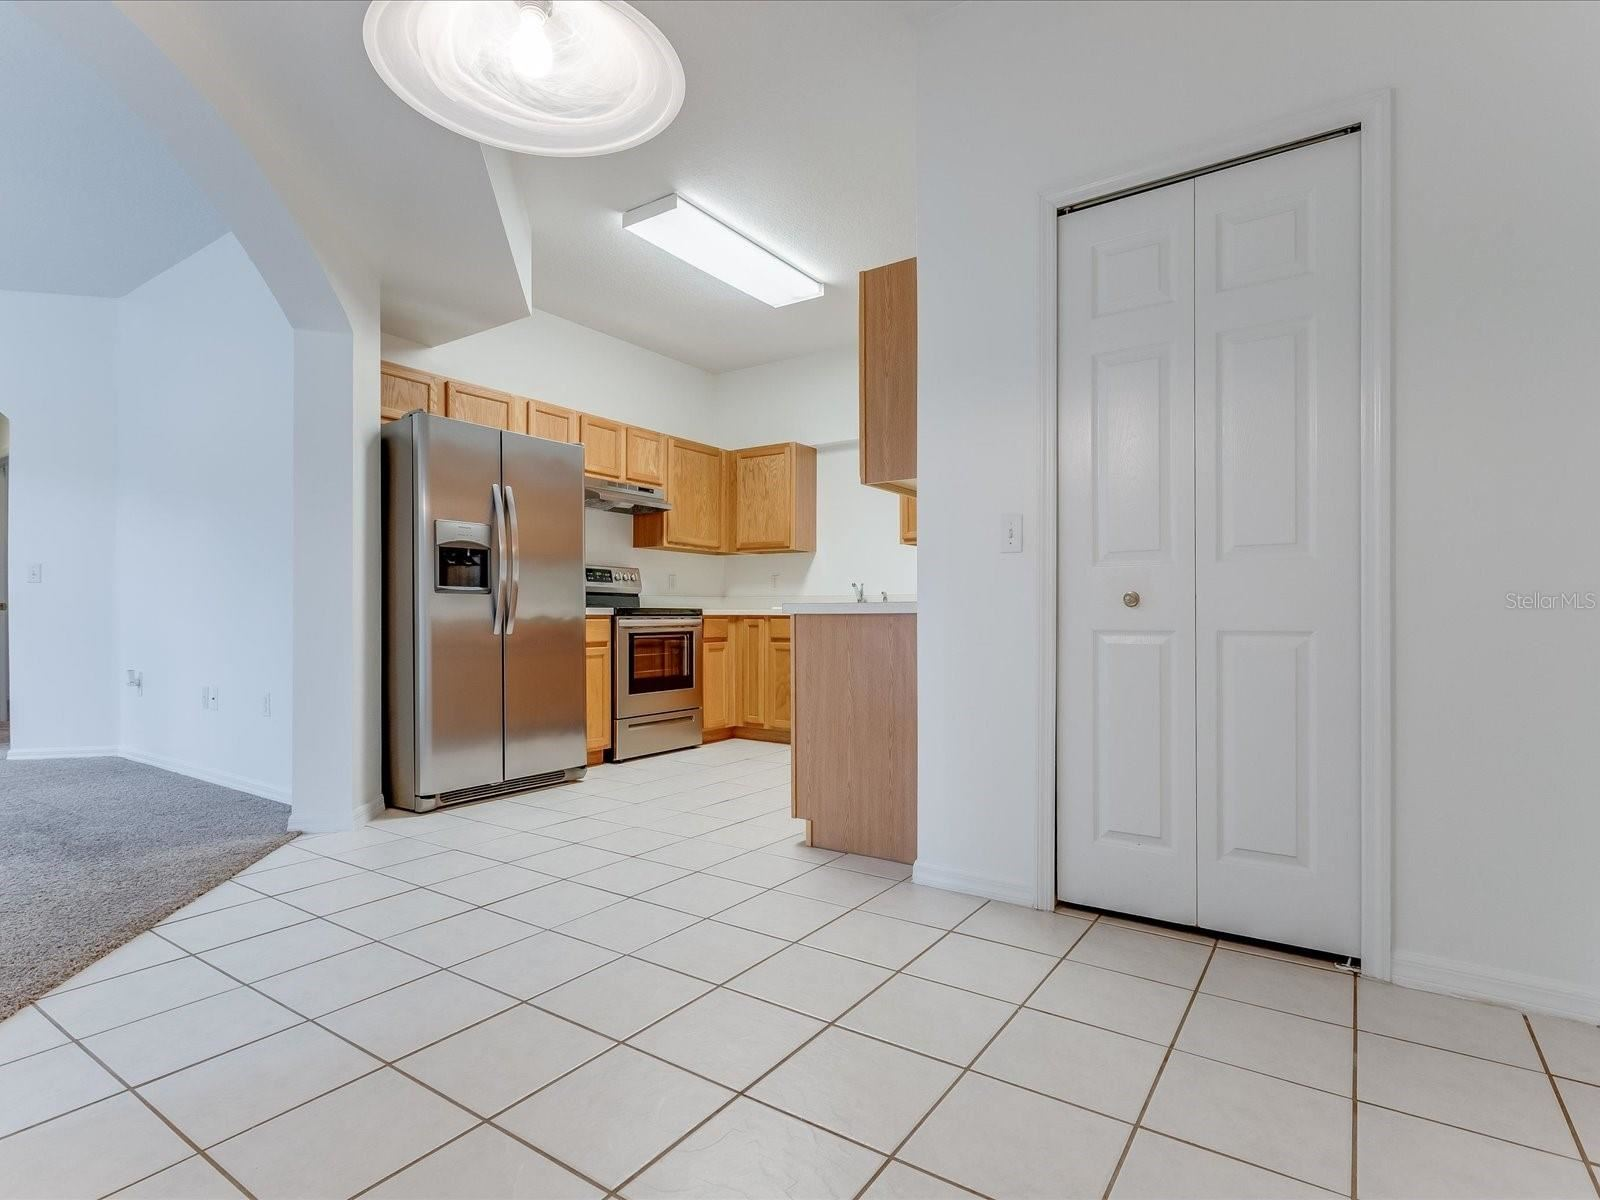 Photo of 6222 ROSEFINCH COURT #101, LAKEWOOD RANCH, FL 34202 (MLS # A4504571)